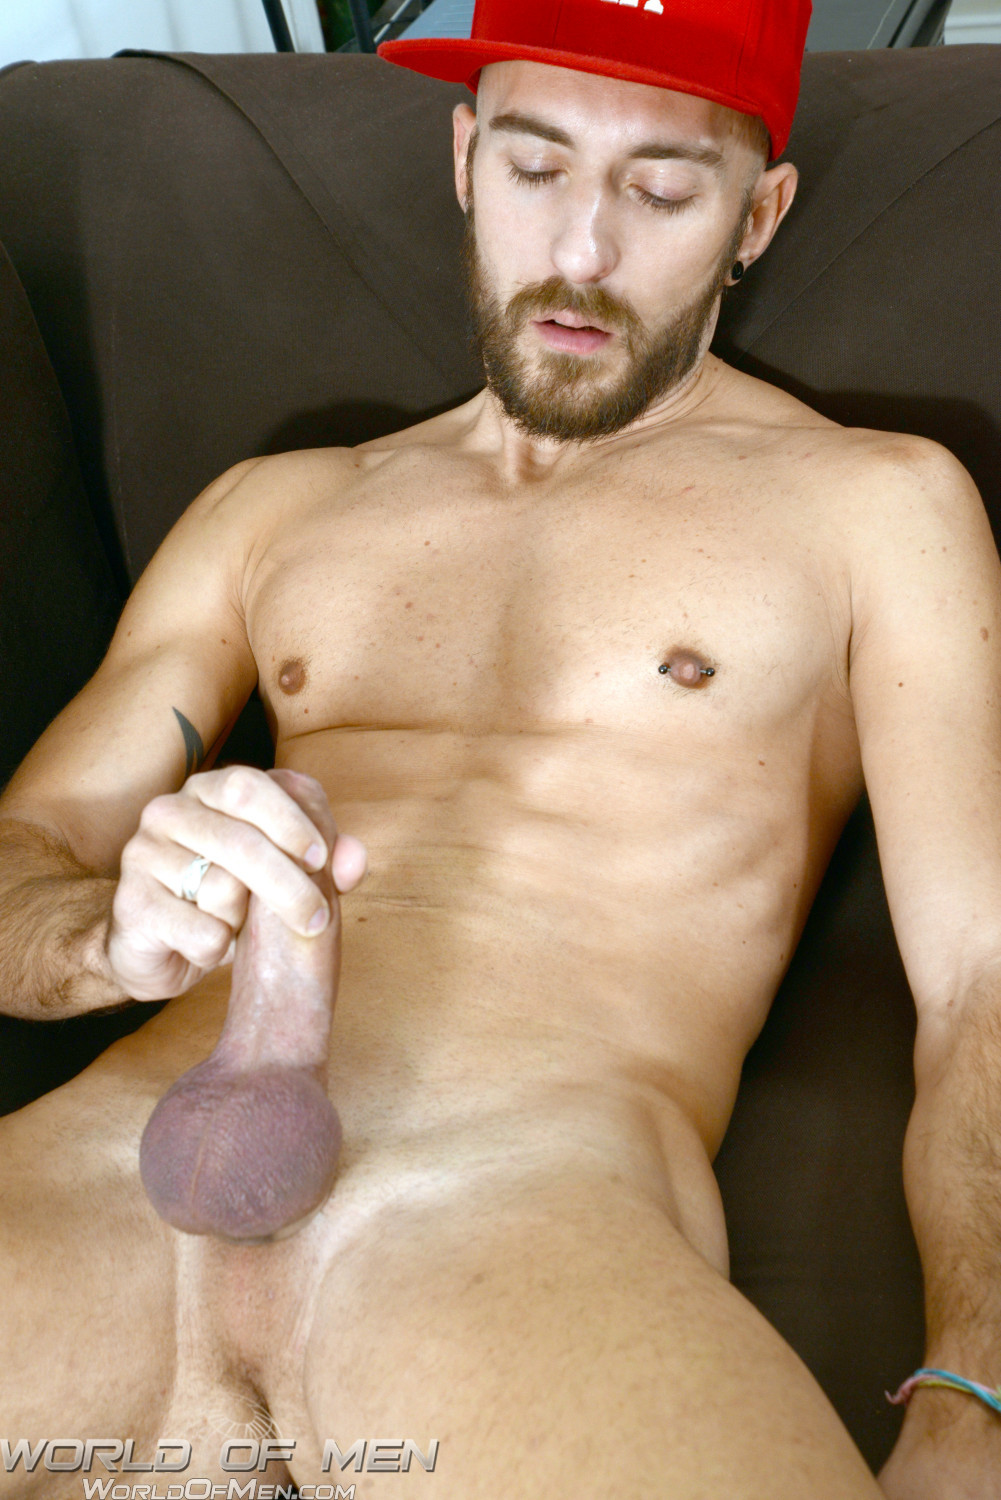 World-of-Men-Enzo-DiKarina-french-guy-with-a-huge-uncut-cock-massive-cum-load-09 Amateur French Hustler With Huge Uncut Cock Blasts Cum All Over